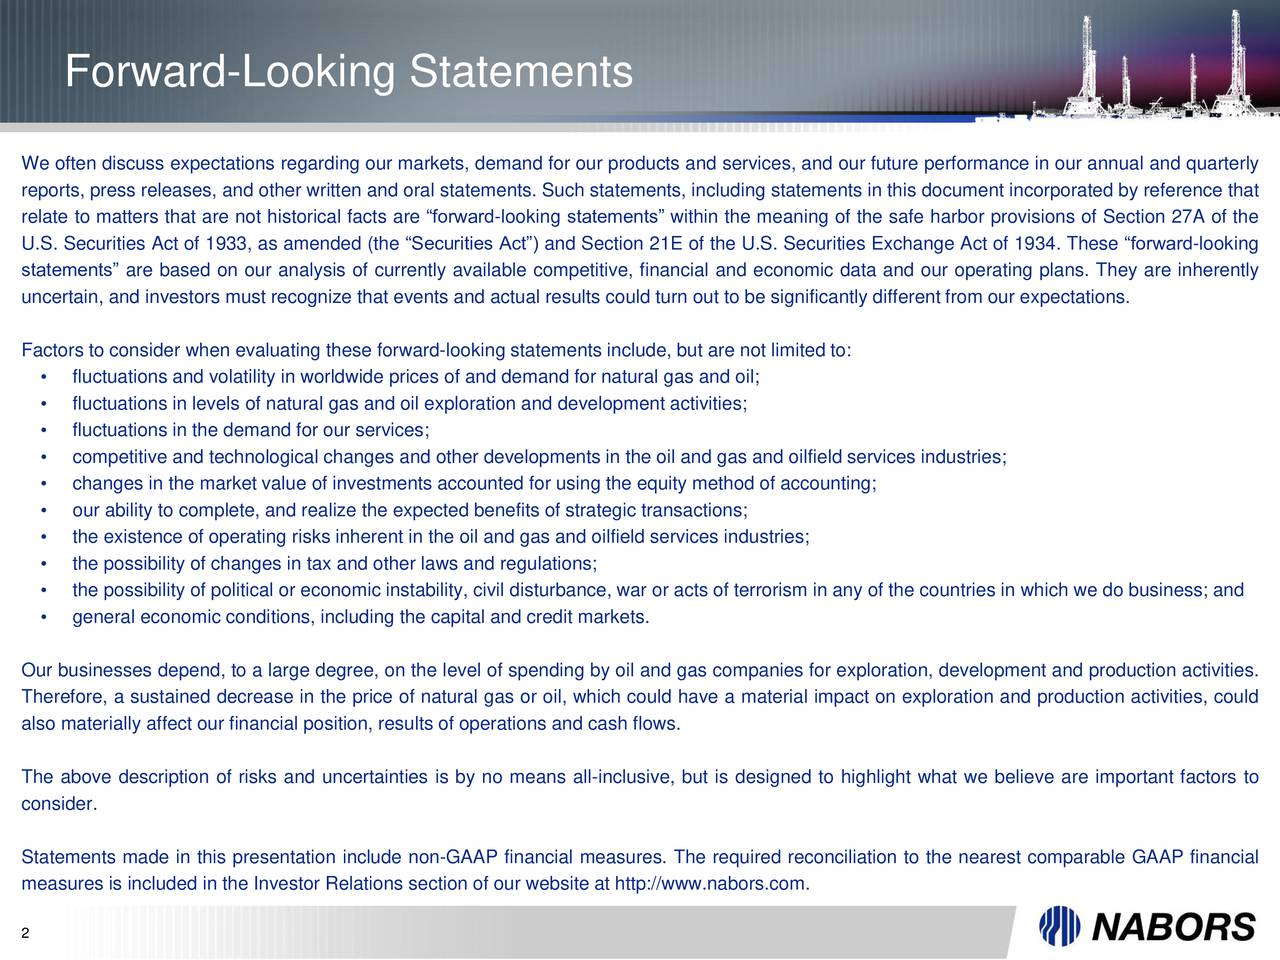 We often discuss expectations regarding our markets, demand for our products and services, and our future performance in our annual and quarterly reports, press releases, and other written and oral statements. Such statements, including statements in this document incorporated by reference that relate to matters that are not historical facts are forward-looking statements within the meaning of the safe harbor provisions of Section 27A of the U.S. Securities Act of 1933, as amended (the Securities Act) and Section 21E of the U.S. Securities Exchange Act of 1934. These forward-looking statements are based on our analysis of currently available competitive, financial and economic data and our operating plans. They are inherently uncertain, and investors must recognize that events and actual results could turn out to be significantly different from our expectations. Factors to consider when evaluating these forward-looking statements include, but are not limited to: fluctuations and volatility in worldwide prices of and demand for natural gas and oil; fluctuations in levels of natural gas and oil exploration and development activities; fluctuations in the demand for our services; competitive and technological changes and other developments in the oil and gas and oilfield services industries; changes in the market value of investments accounted for using the equity method of accounting; our ability to complete, and realize the expected benefits of strategic transactions; the existence of operating risks inherent in the oil and gas and oilfield services industries; the possibility of changes in tax and other laws and regulations; the possibility of political or economic instability, civil disturbance, war or acts of terrorism in any of the countries in which we do business; and general economic conditions, including the capital and credit markets. Our businesses depend, to a large degree, on the level of spending by oil and gas companies for exploration, development and p